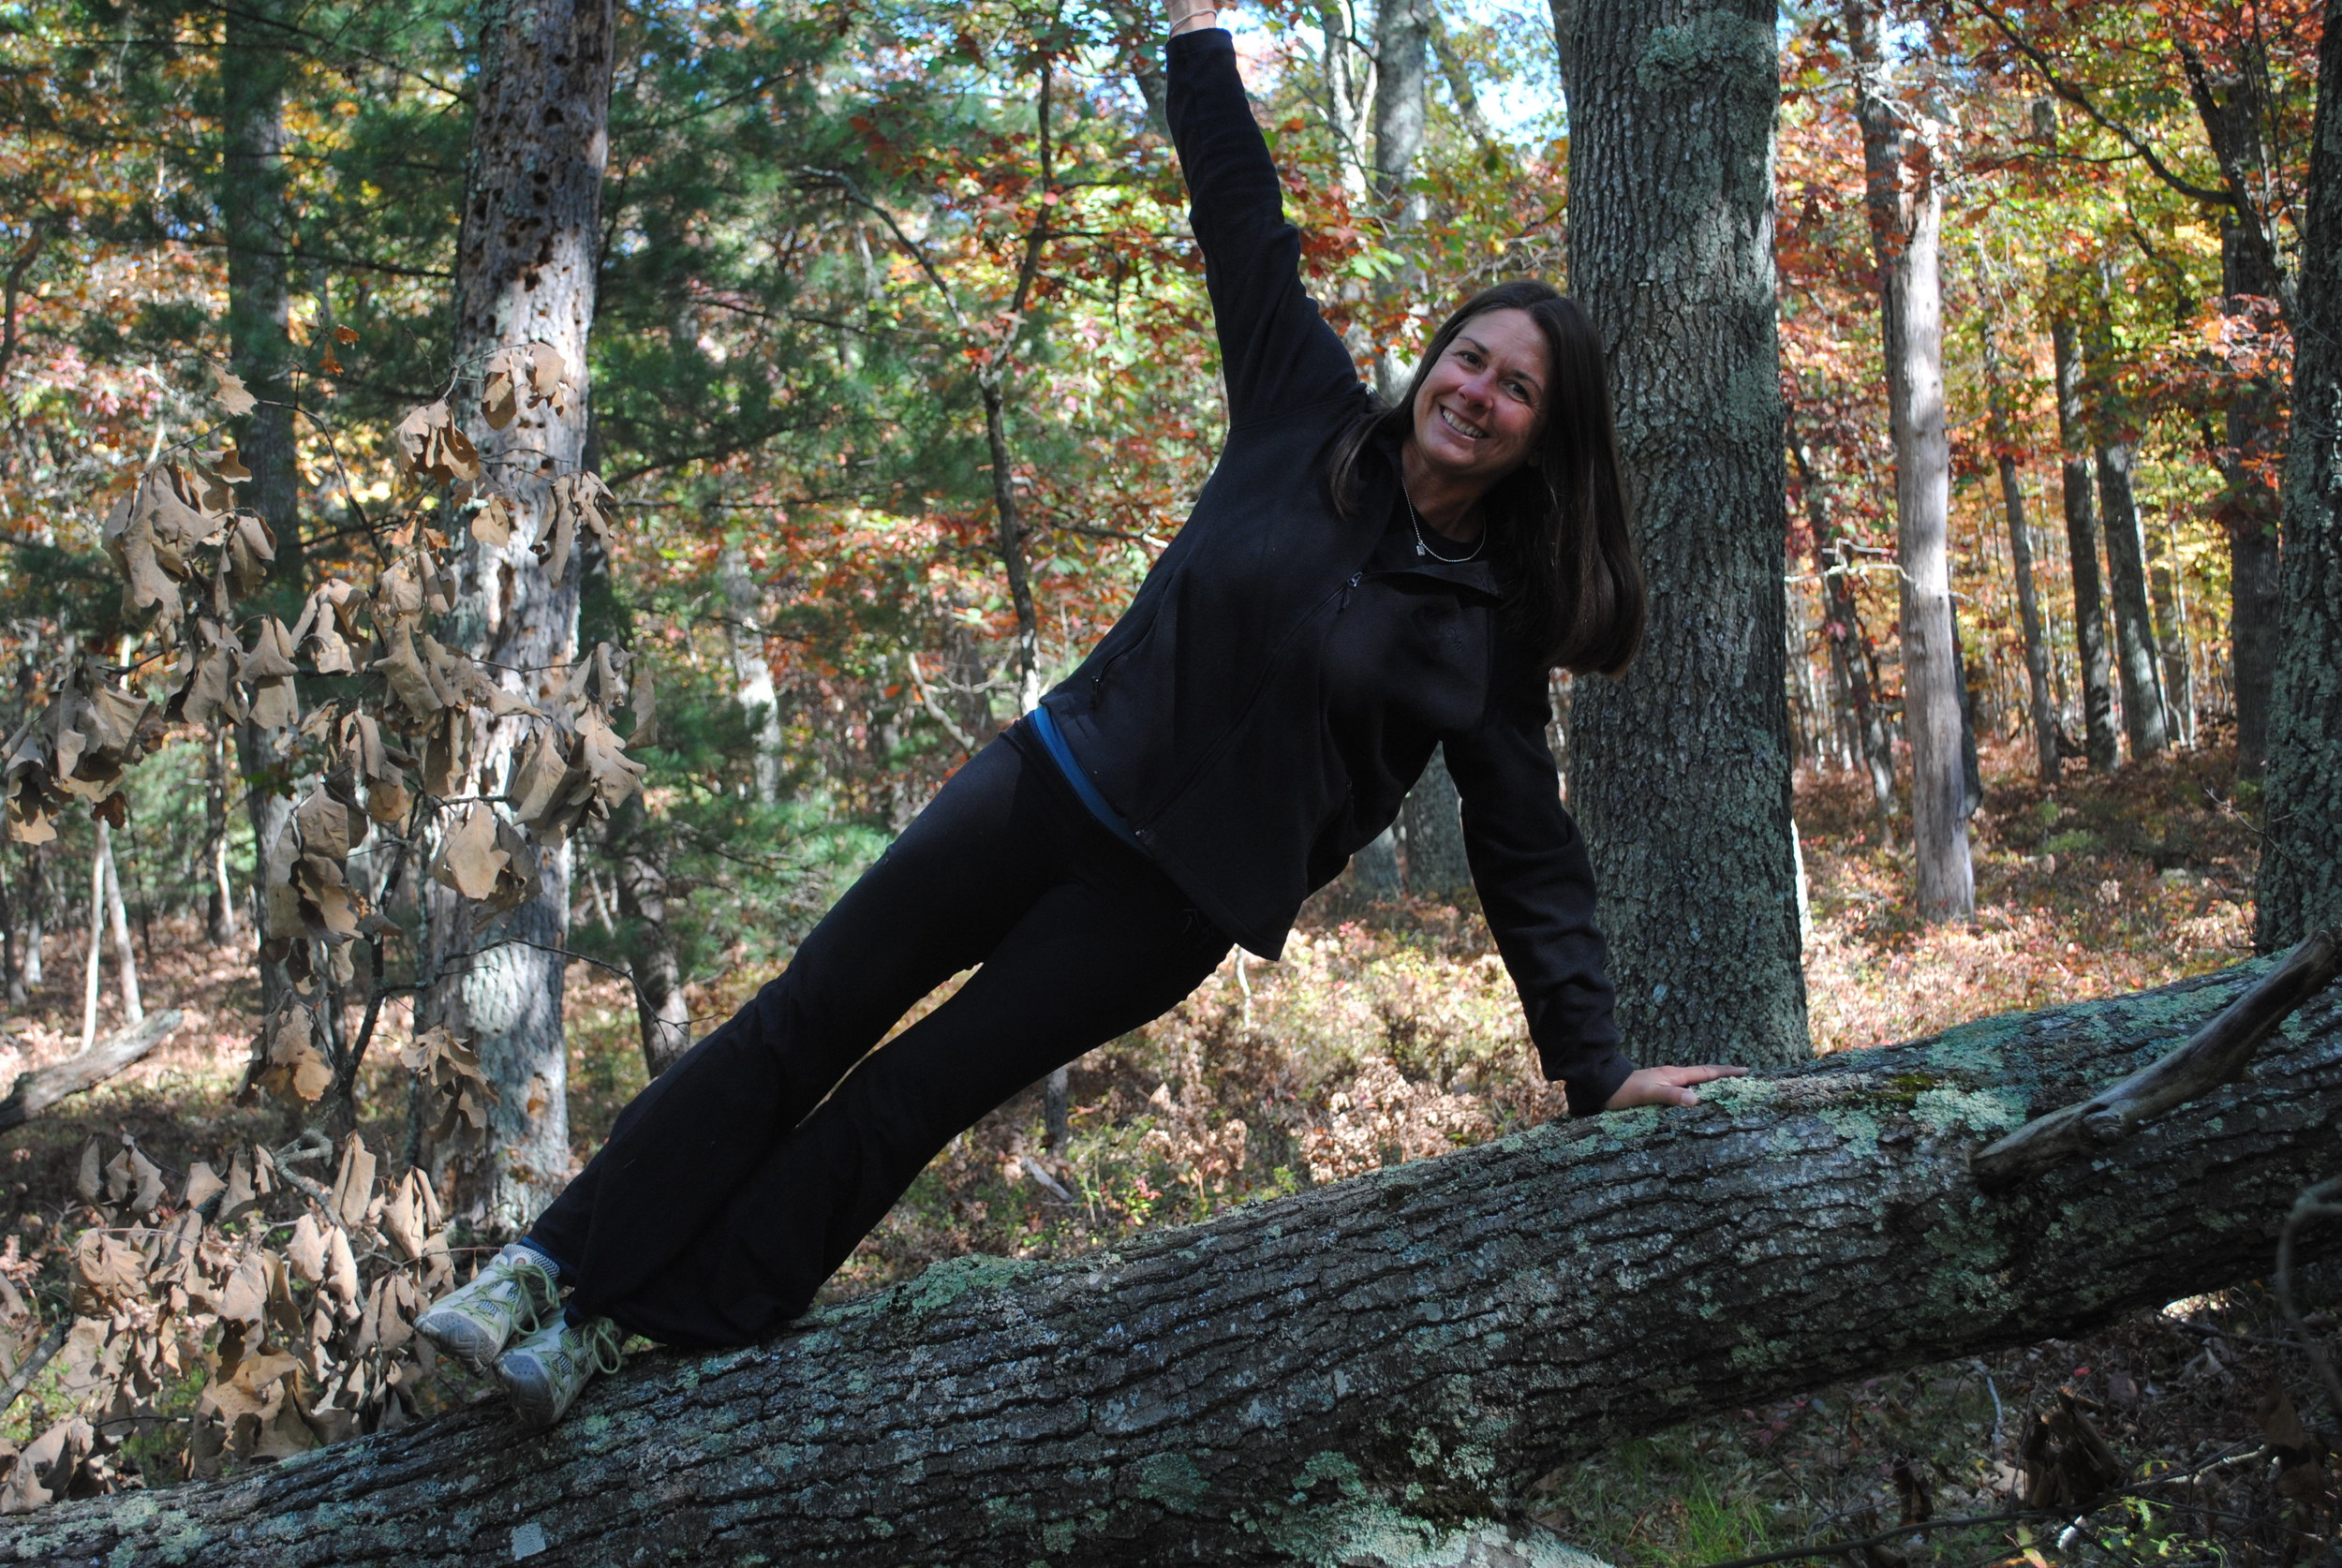 Side planking on a fallen tree. (Super challenging for your balance).